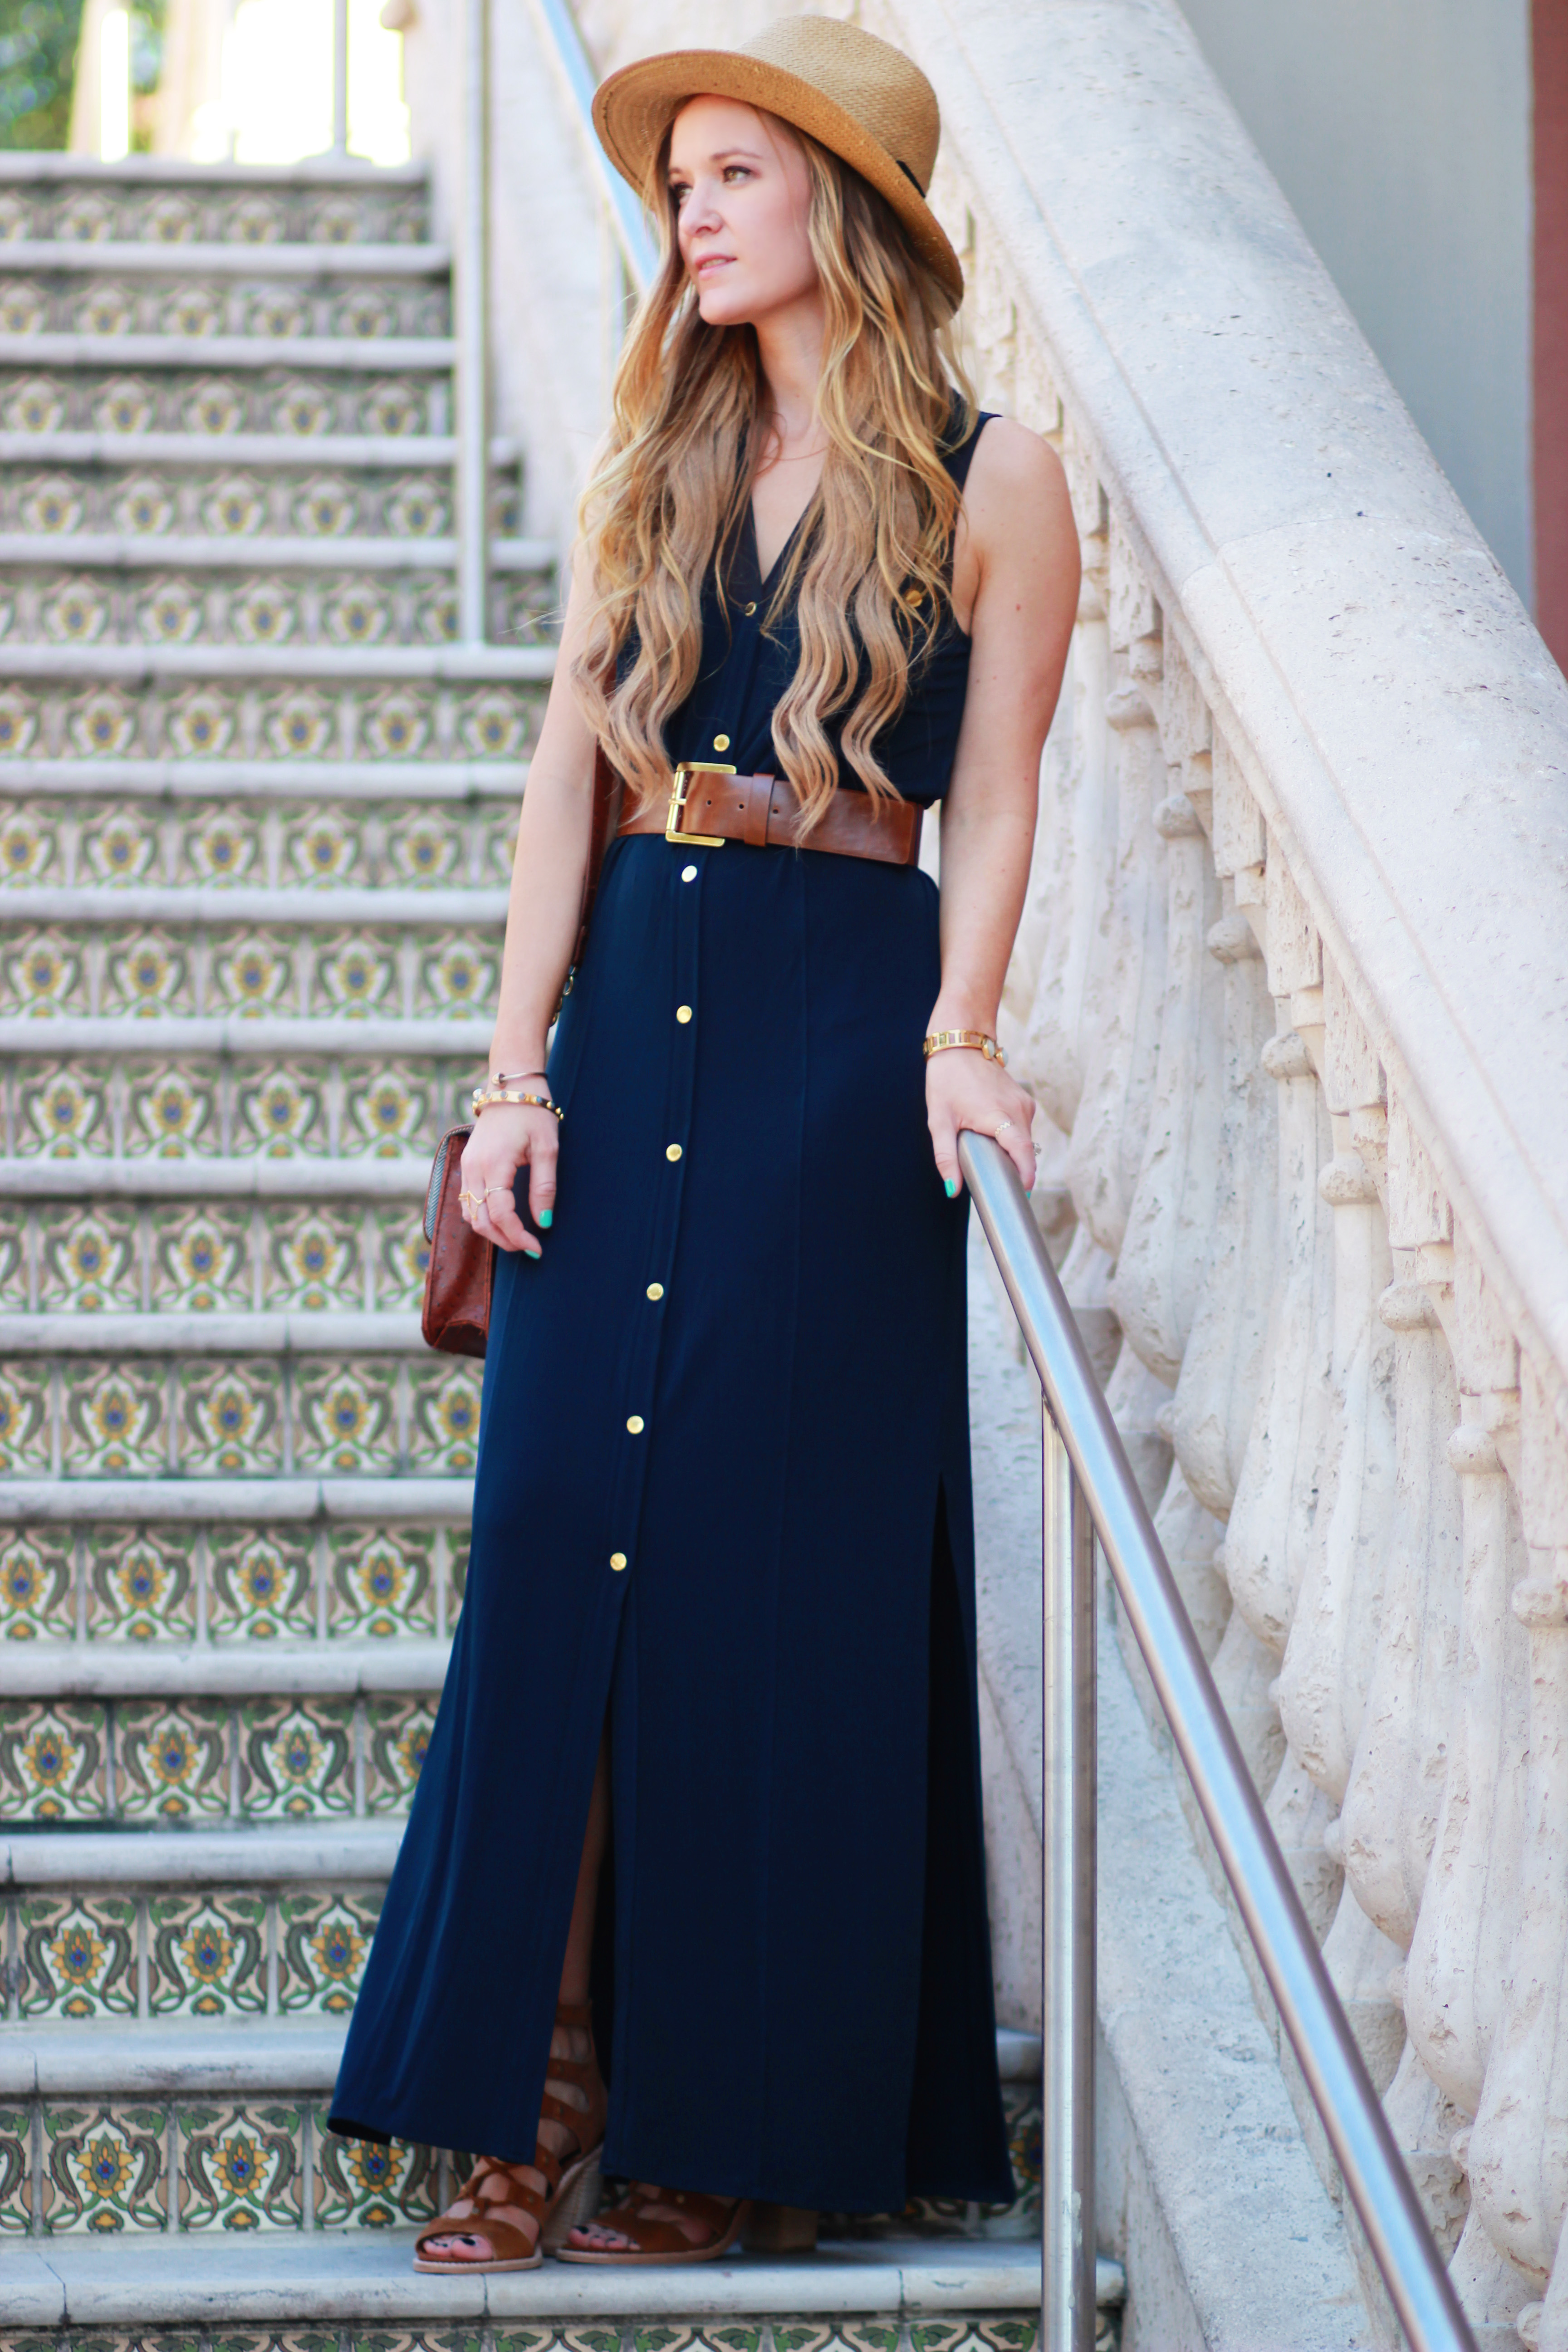 bb213f2b Michael Kors belted maxi dress, Dolce Vita lace up Lyndon heels for a  casual spring